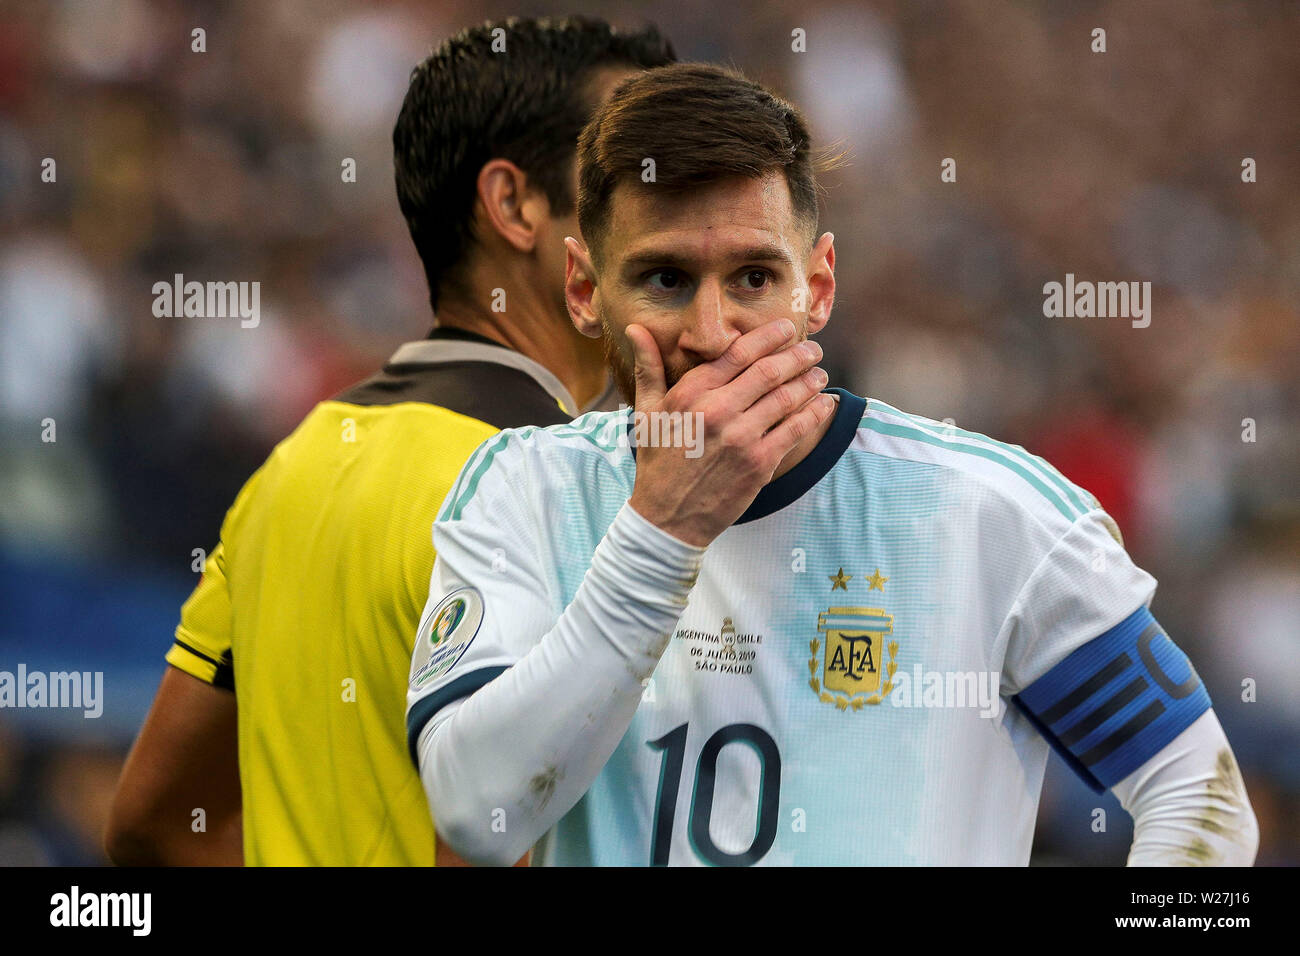 sport Football SAO PAULO, BRAZIL - JULY 06, 2019 Argentina vs Chile, third place - Arena Corinthians Stadium, Sao Paulo, Brazil - July 06, 2019. Photo: Léo Pinheiro/DiaEsportivo in the pic: Lionel Messi of Argentina - Stock Image